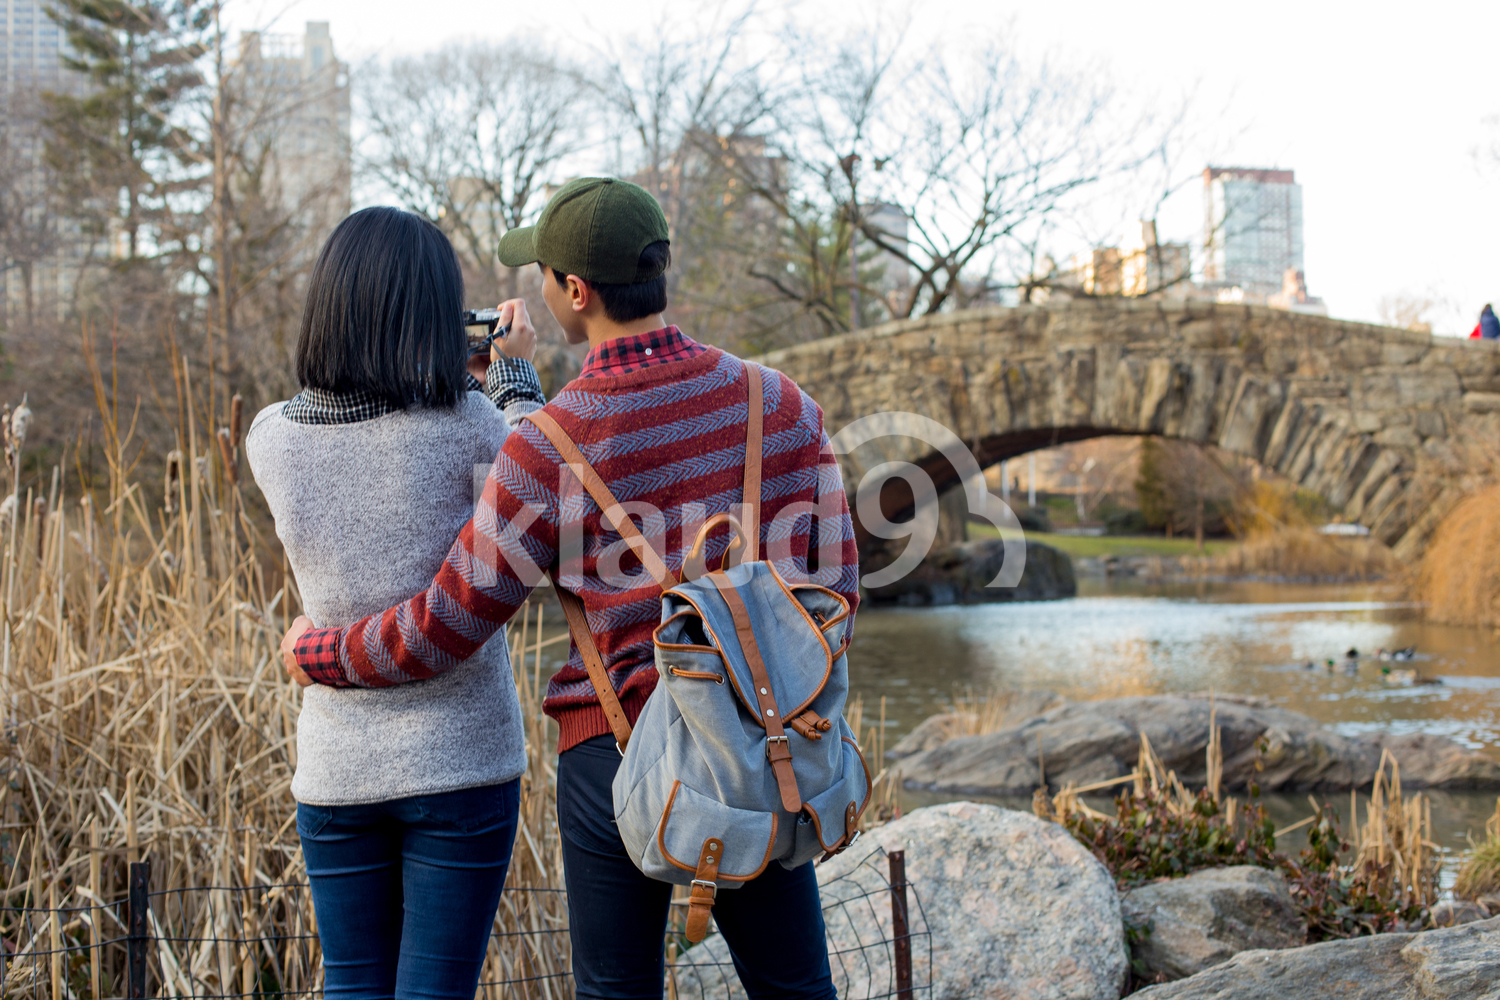 Asian tourists taking photos in Central Park, New York